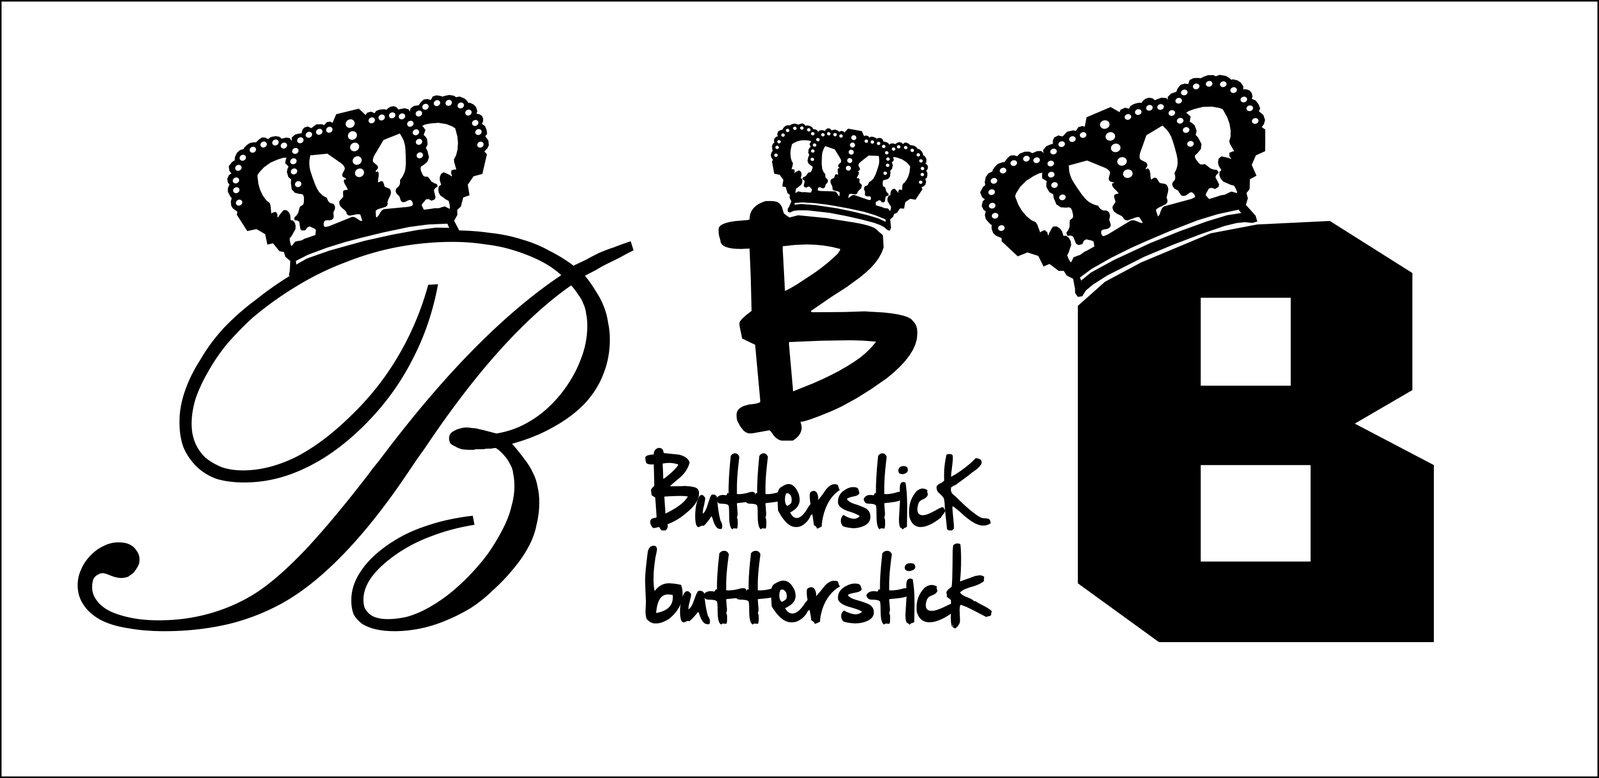 For butterstickinc